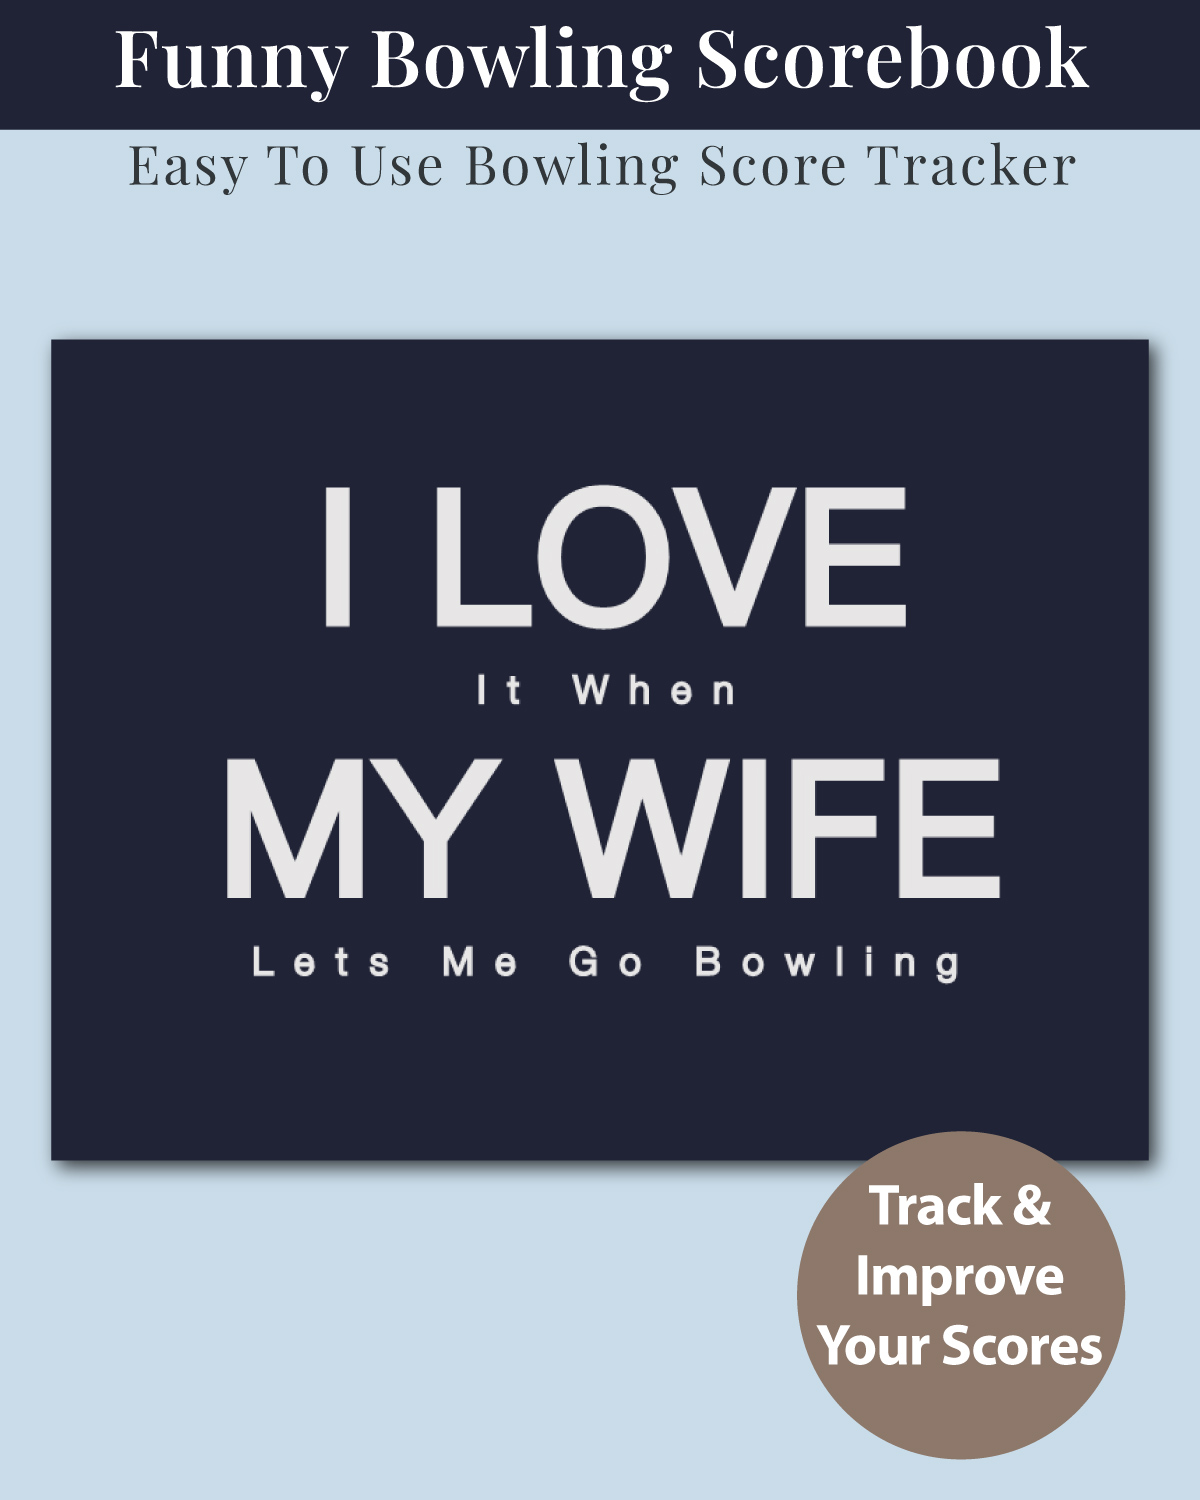 I-Love-It-When-My-Wife-Lets-Me-Go-Bowling-Score-Book-Cover